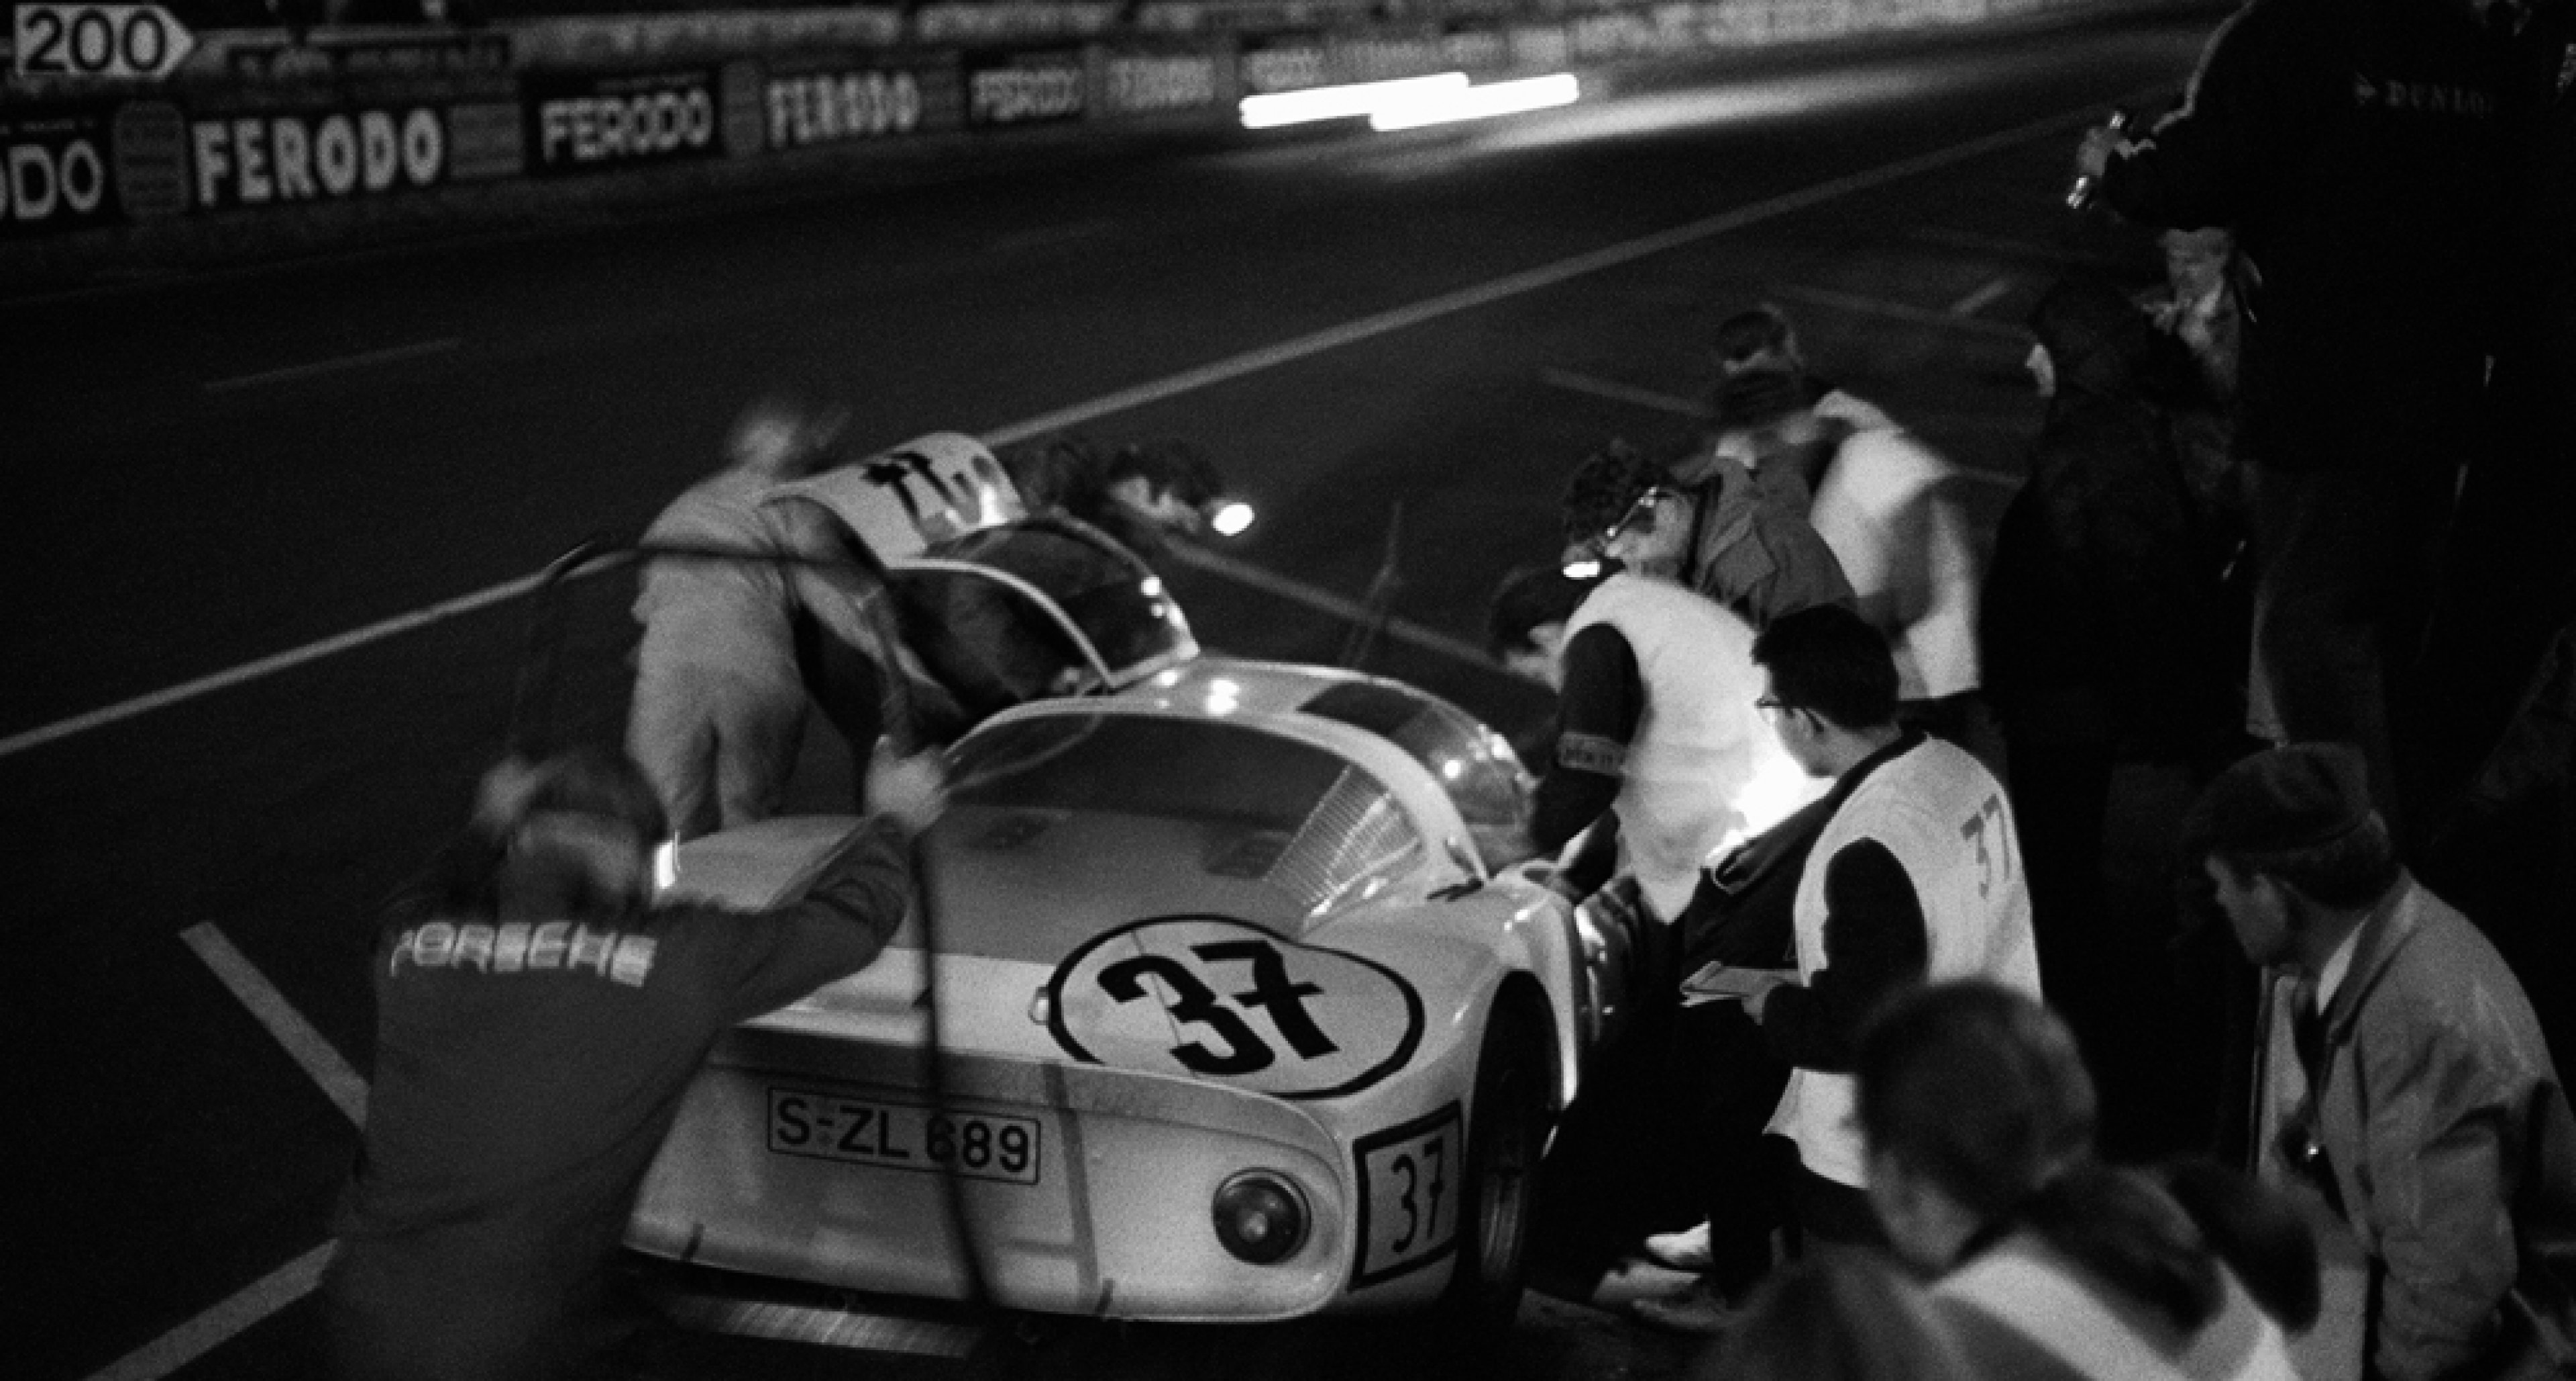 Nighly pitstop of seventh placed Vic Elford (GB) and Ben Pon (NL) in the Porsche 906 154, Le Mans, France, 10 June 1967.